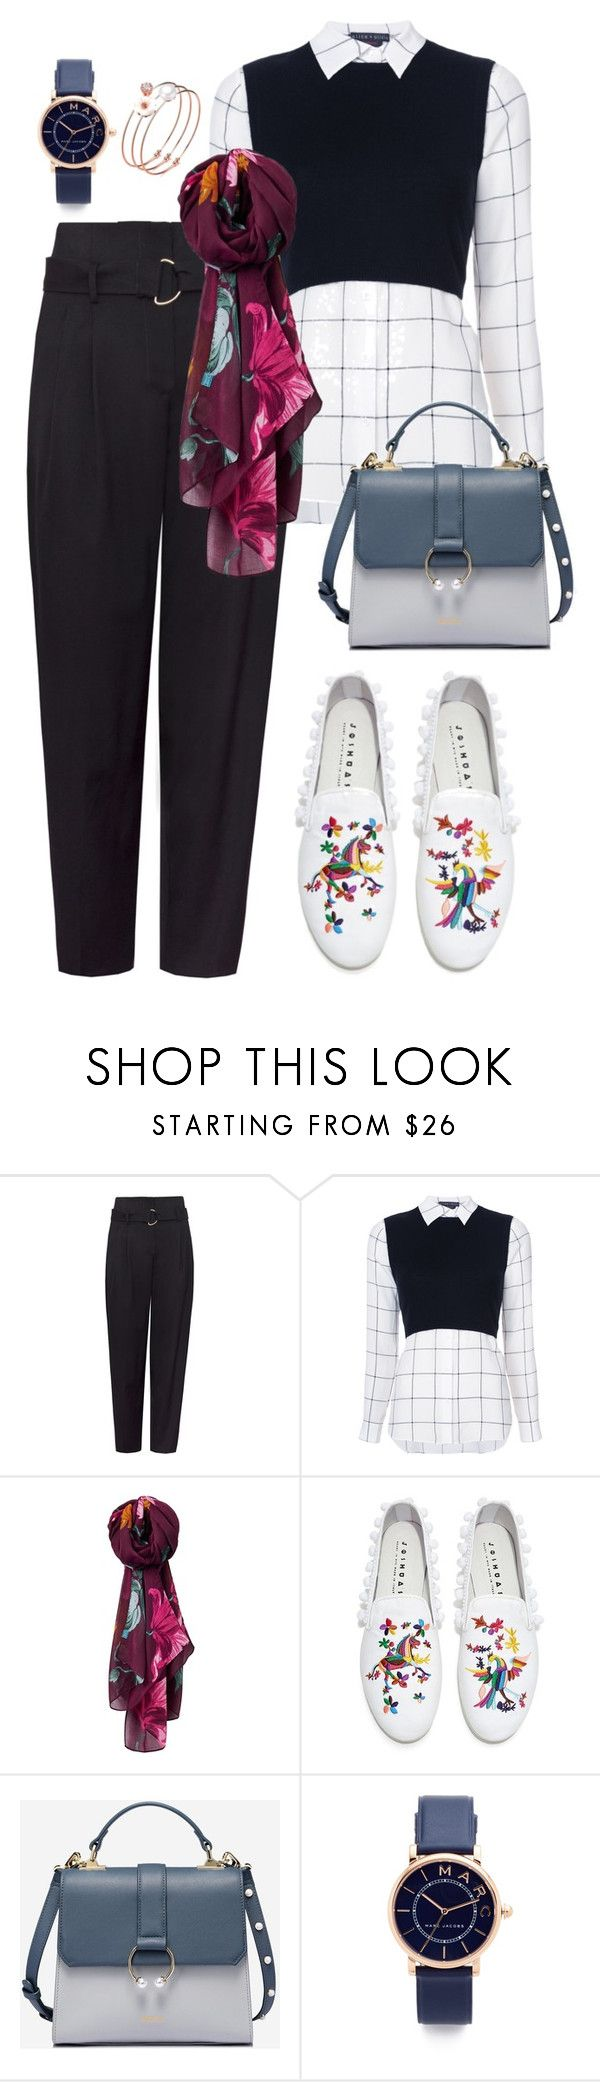 """""""Dusty"""" by afifahafifa on Polyvore featuring Alice + Olivia, Joules, Joshua's, Marc Jacobs, look, class and dusty"""